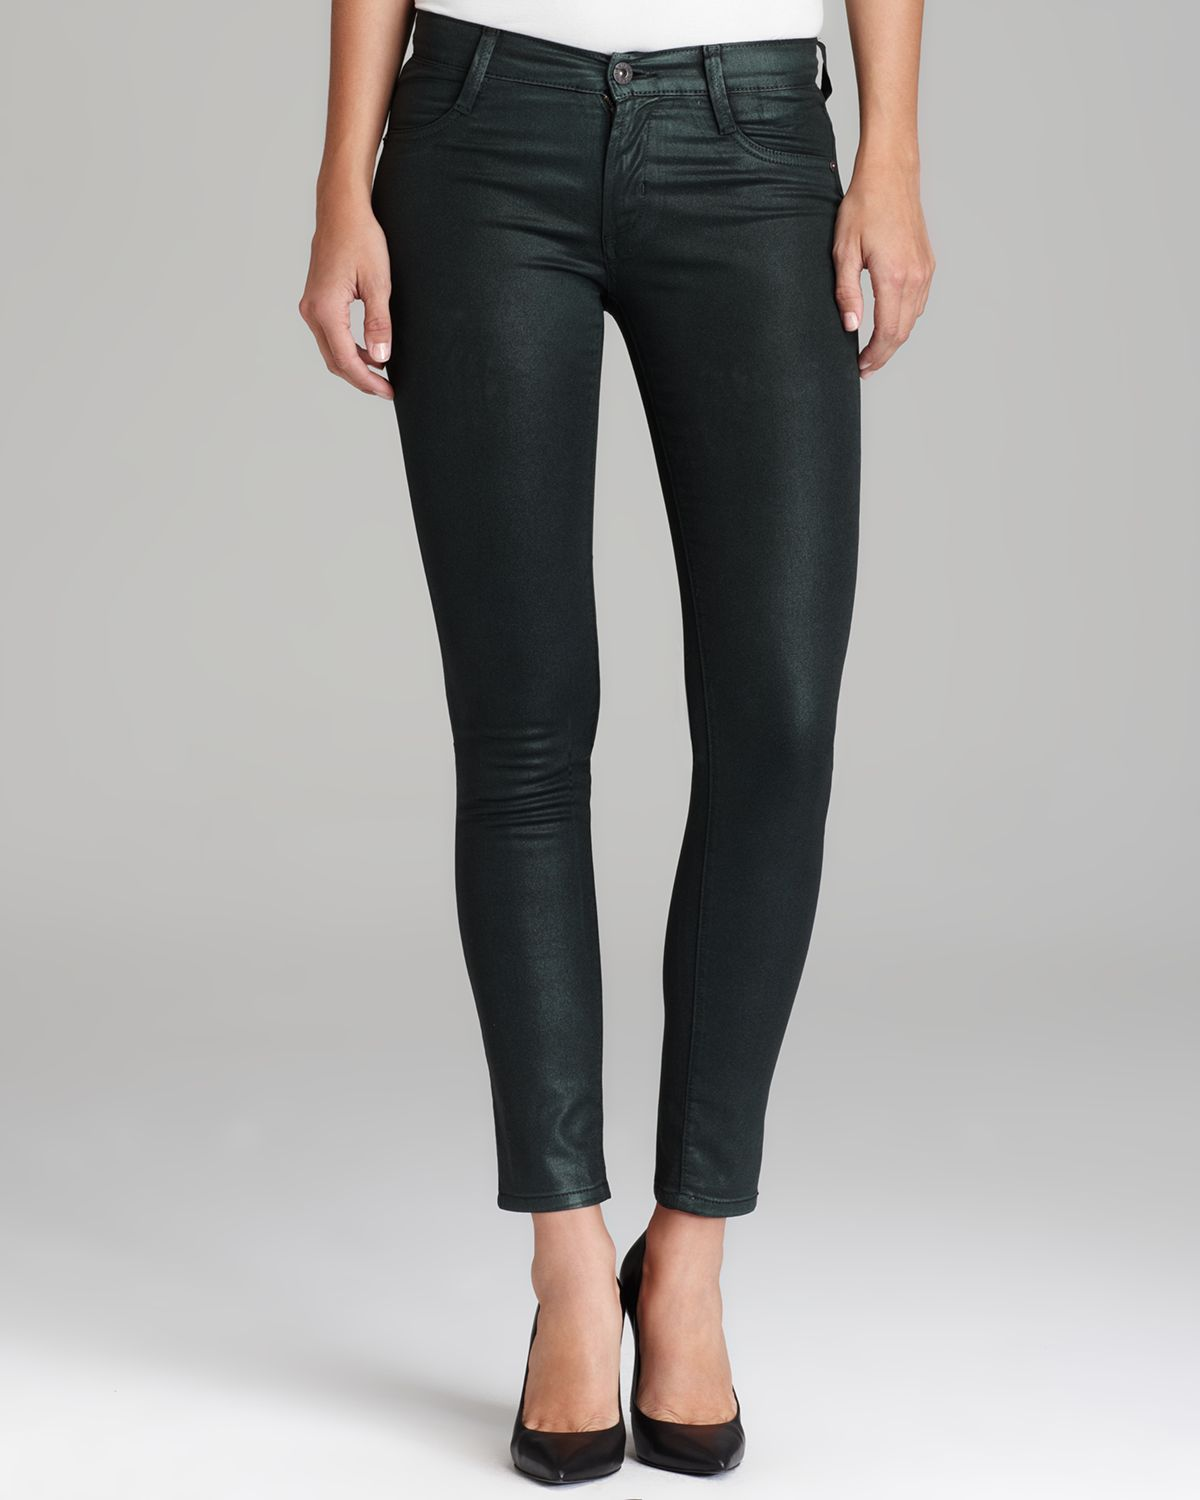 James Jeans - Twiggy Coated in Black Emerald | Bloomingdale's